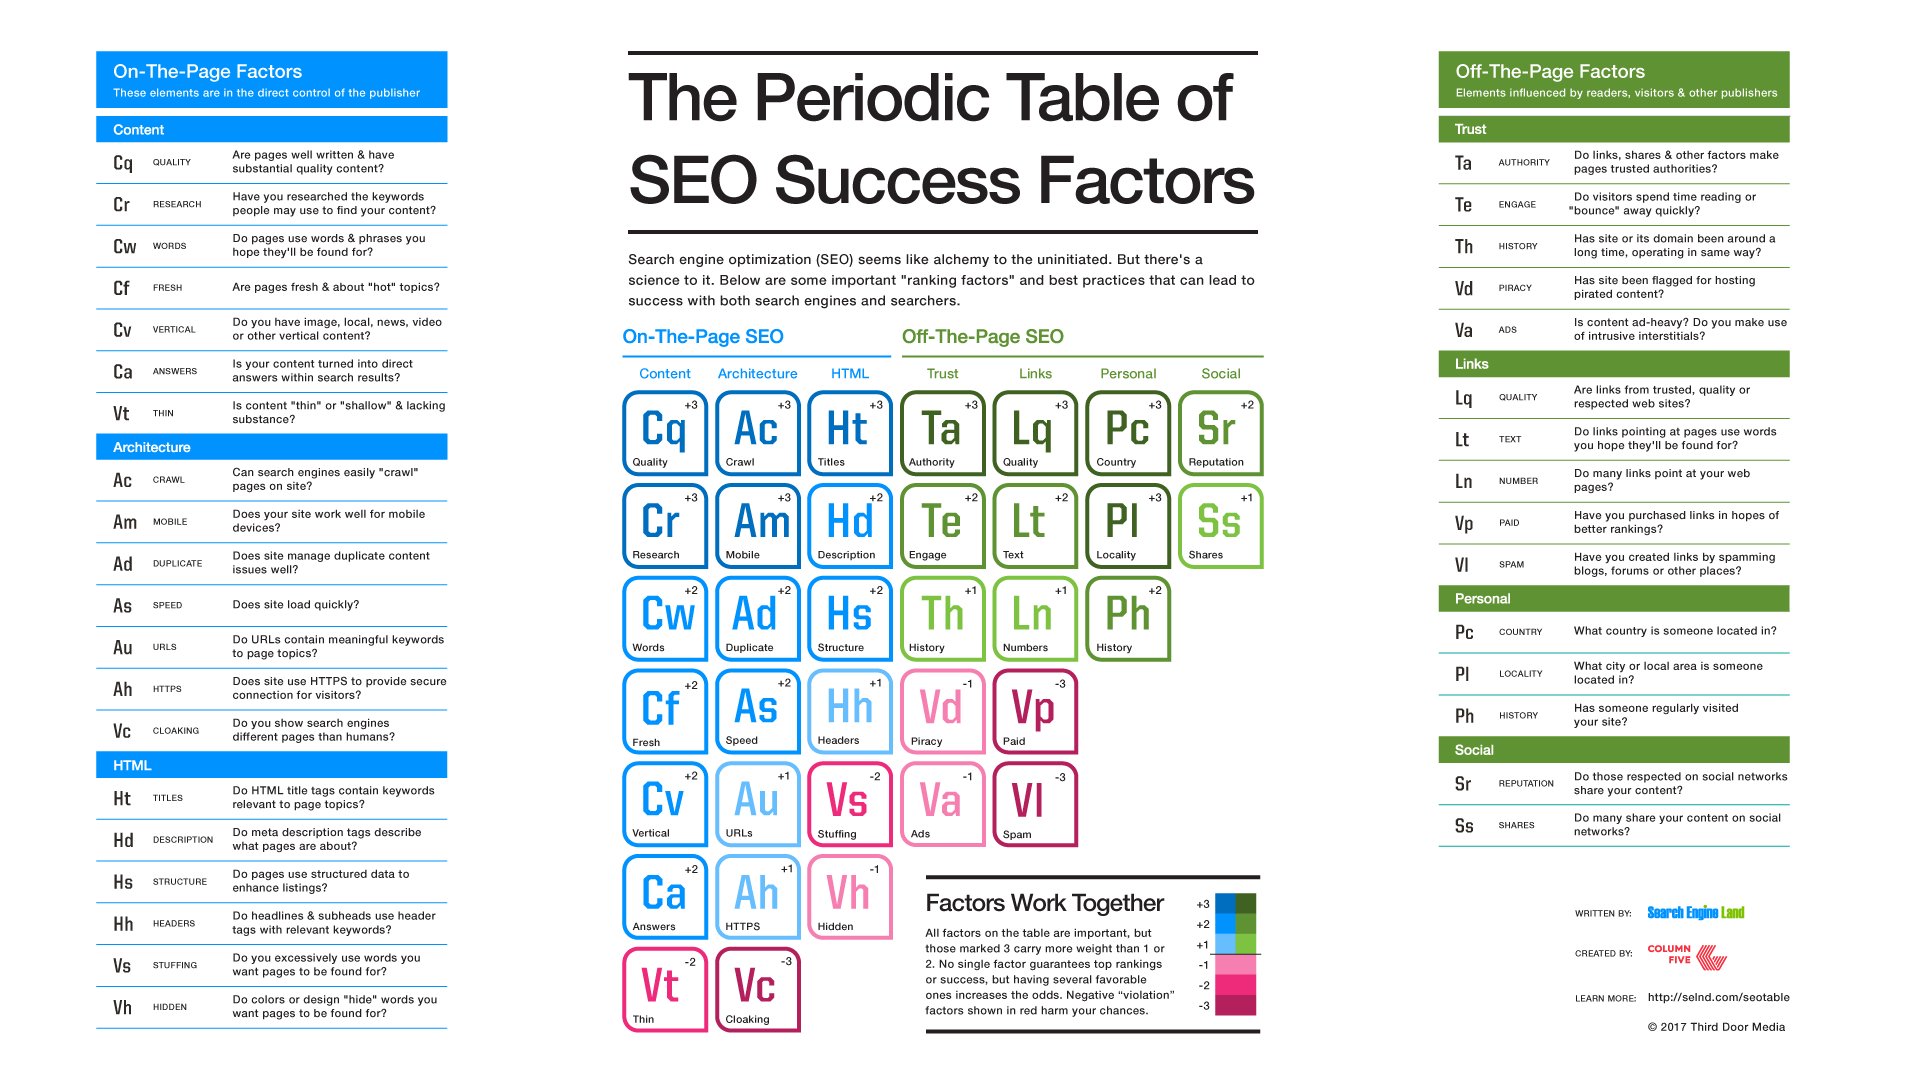 SEO periodic table of success factors 2017 from Search Engine Land